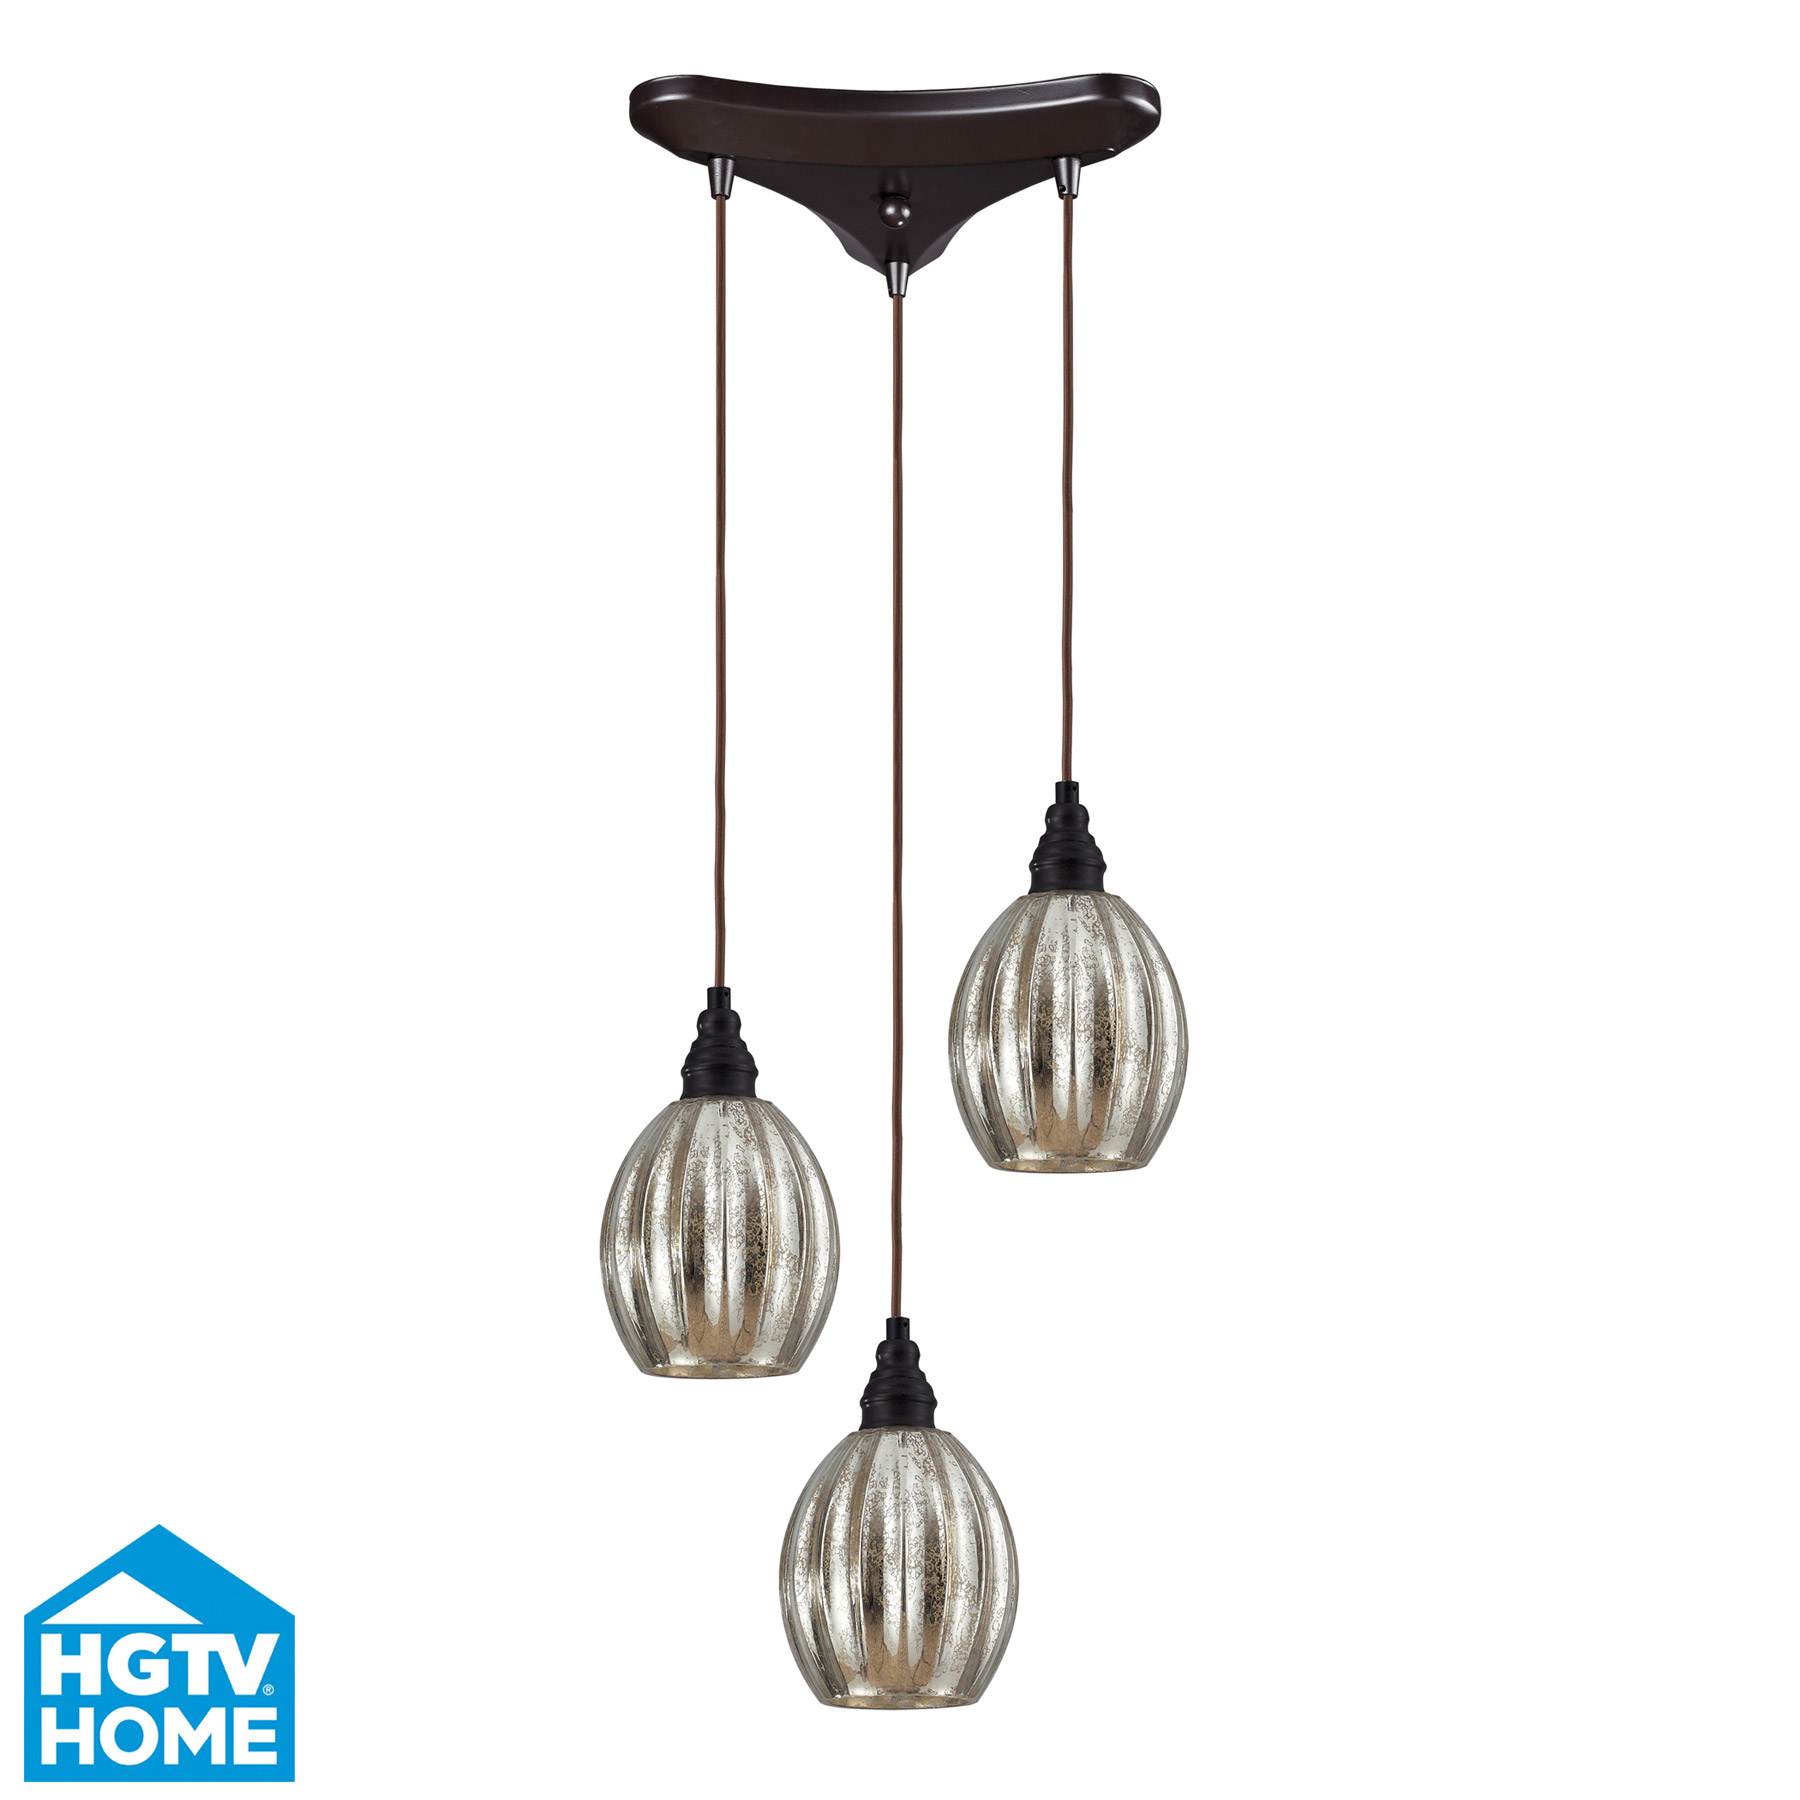 Elk Lighting 46007/3 Danica 3 Light Multi Pendant Ceiling